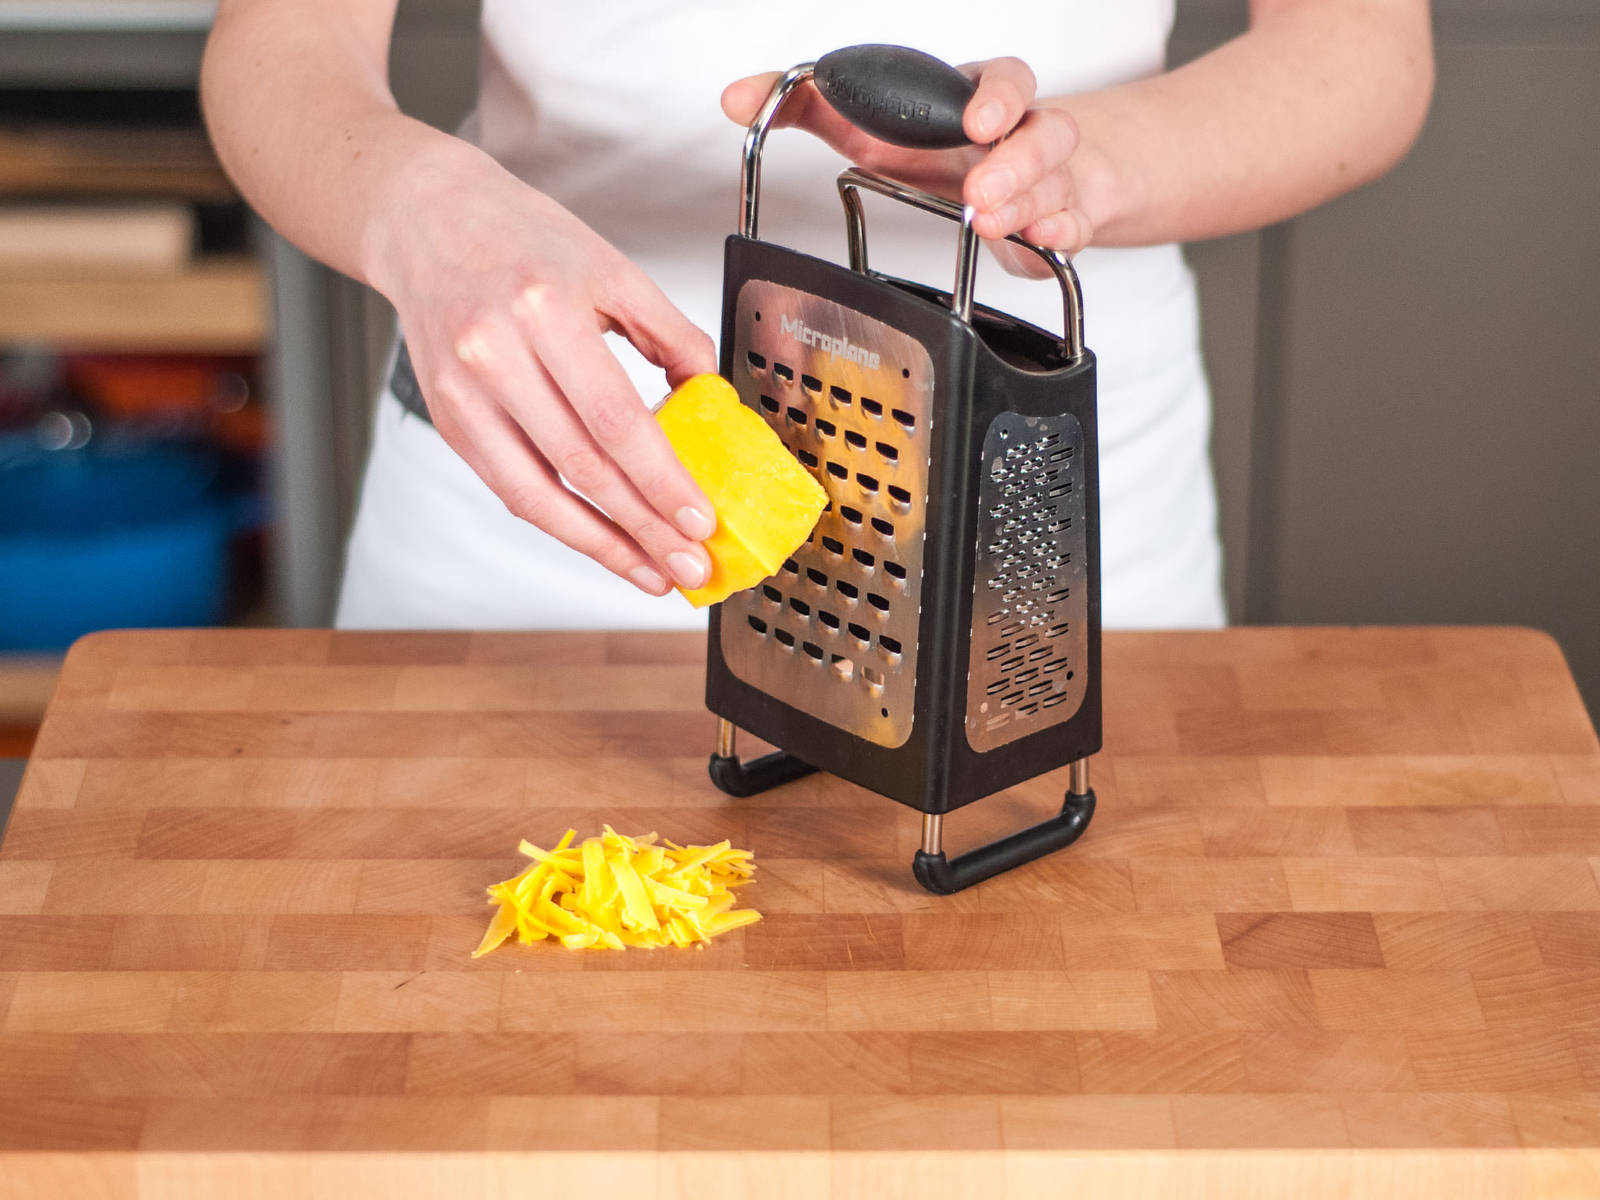 Grate cheddar cheese.